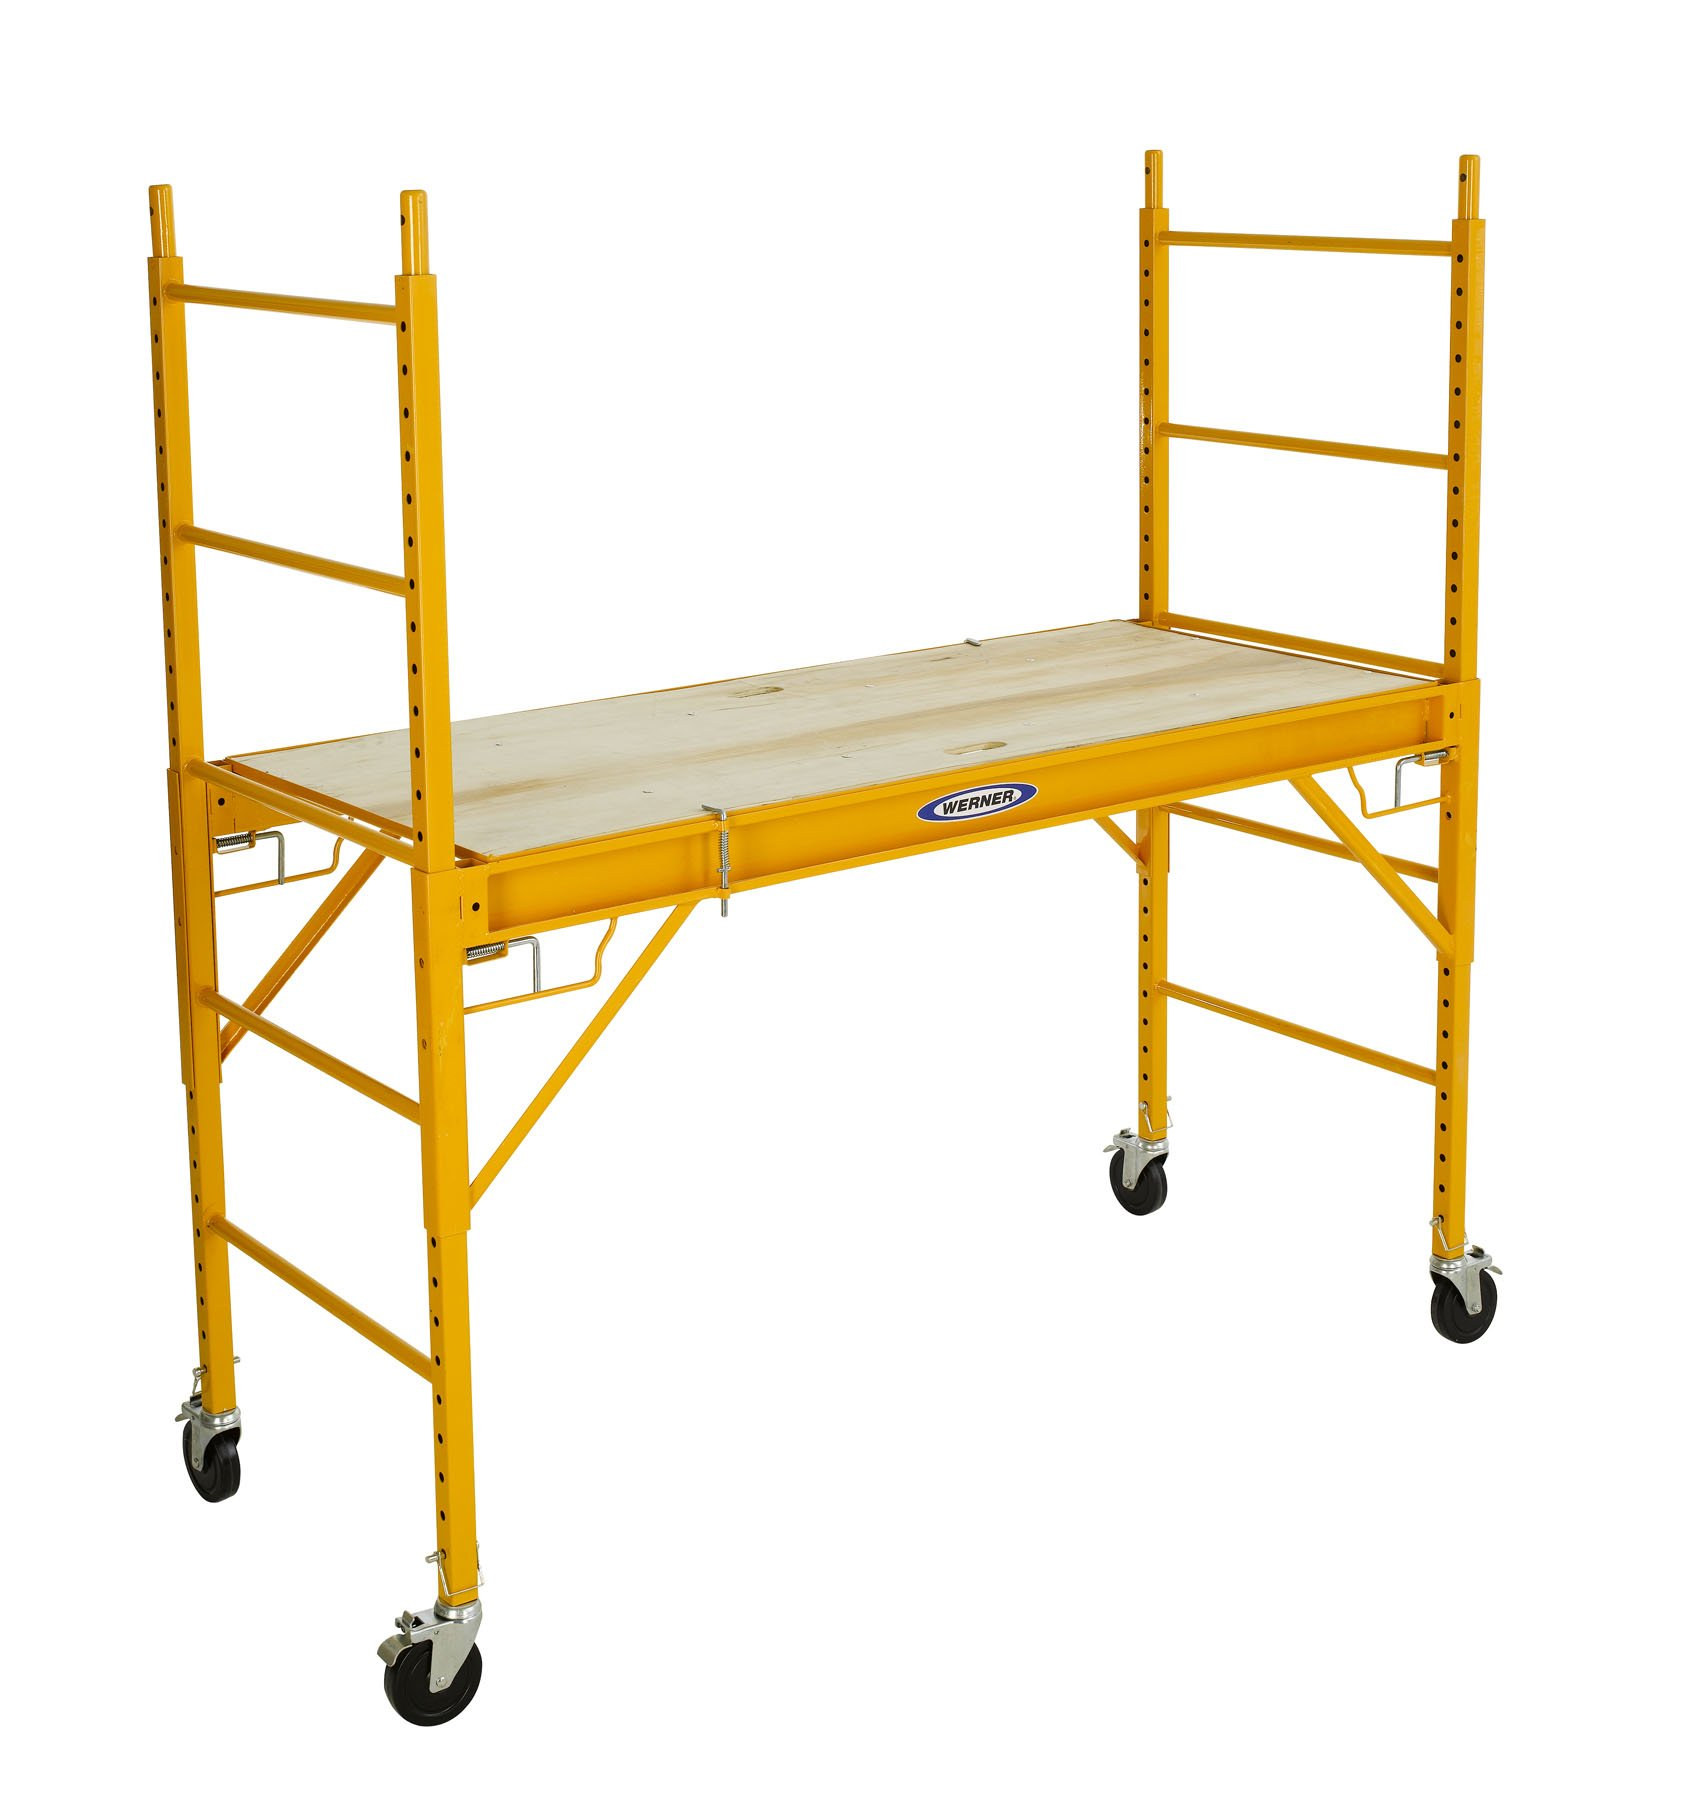 Werner SRS-72 6-Foot Steel Rolling Scaffold by Werner